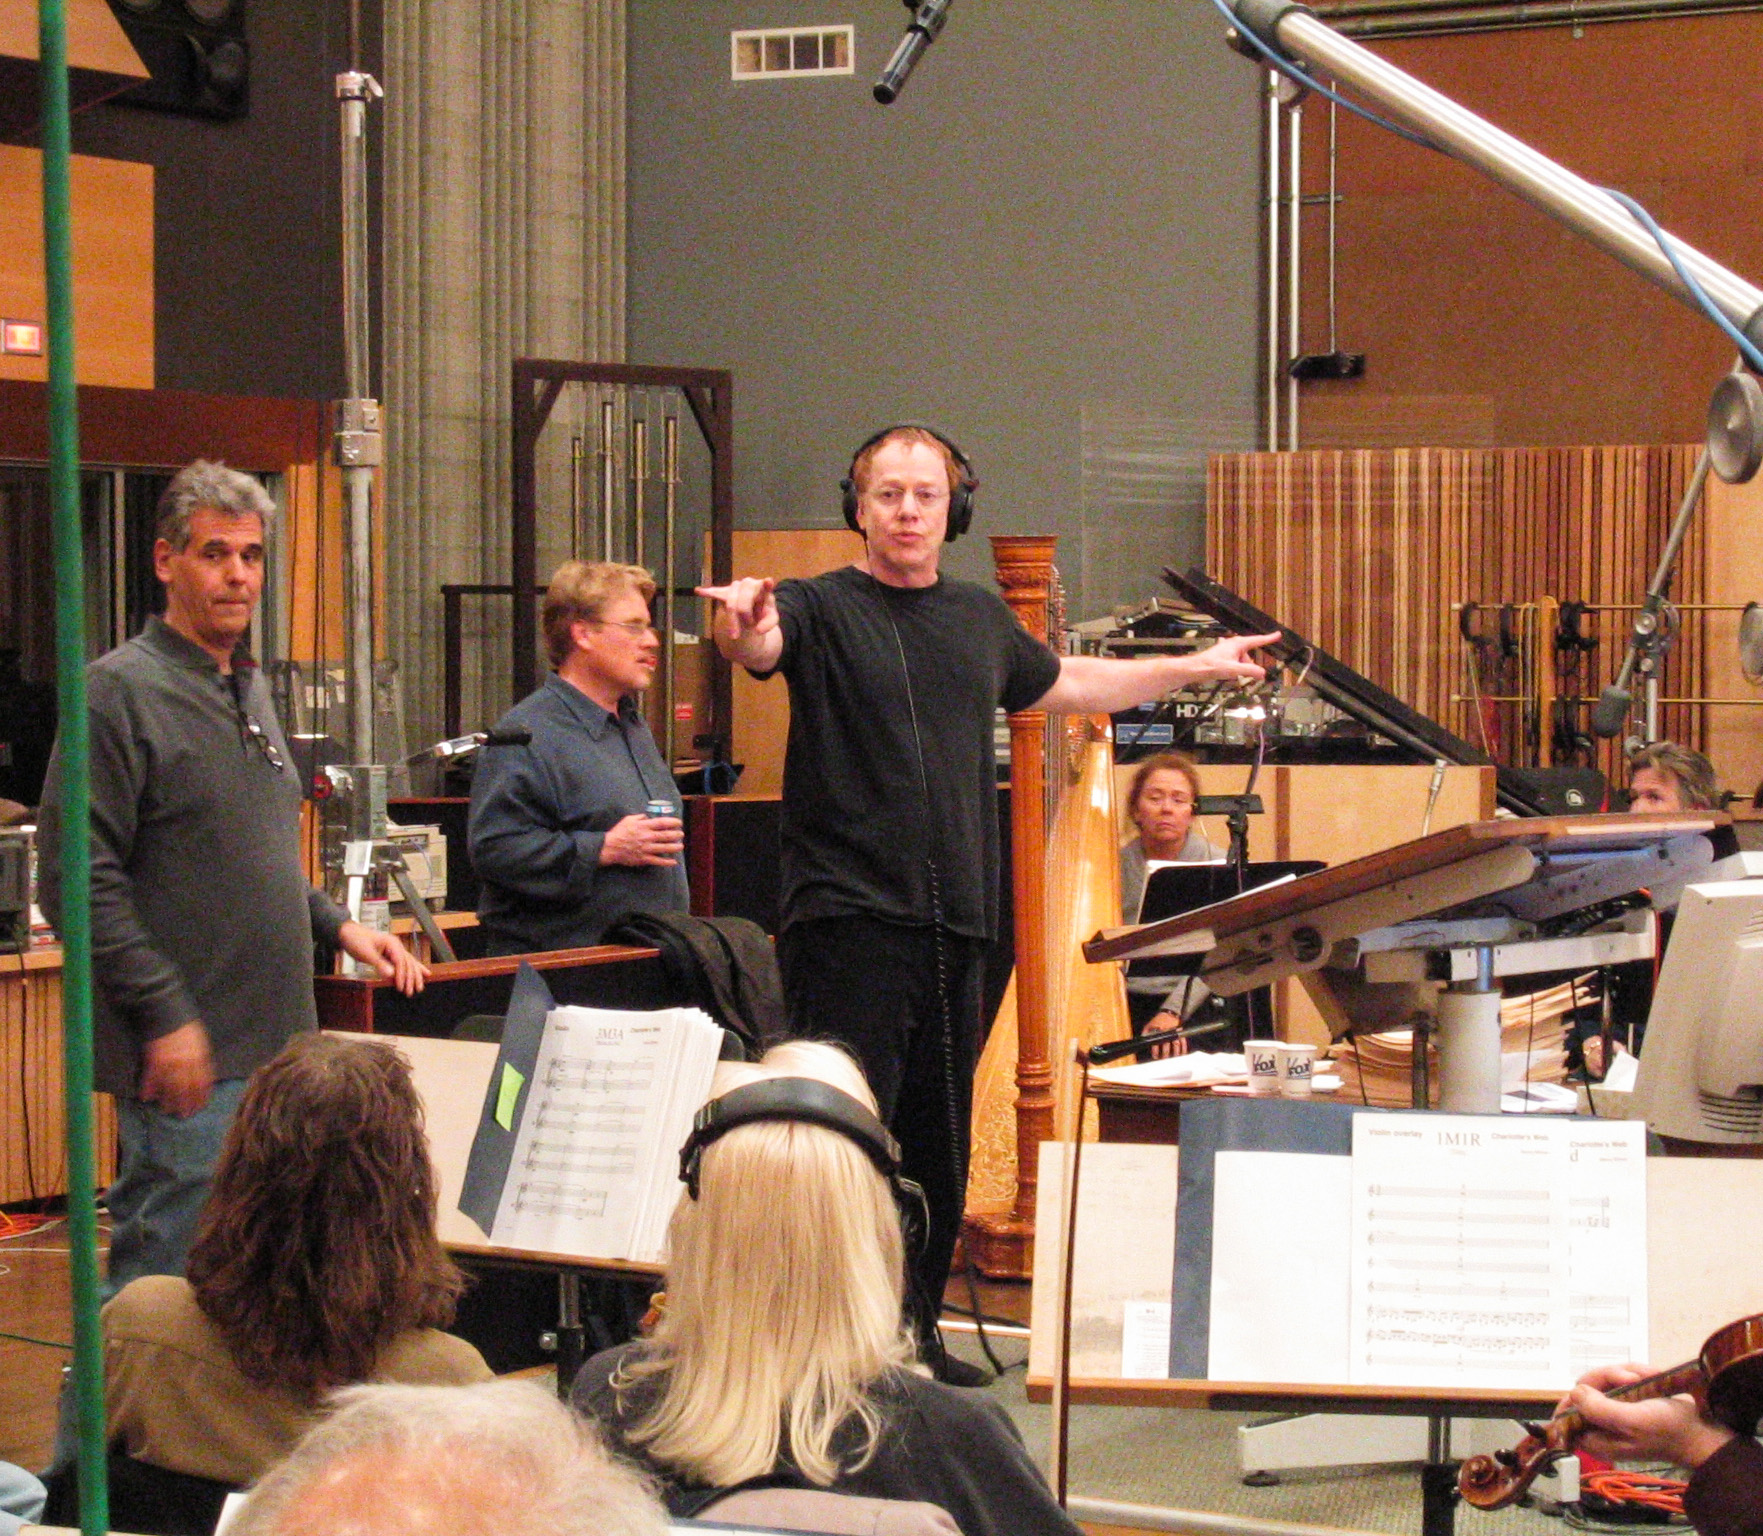 Danny Conducting at Charlotte's Web Scoring Session (2006)